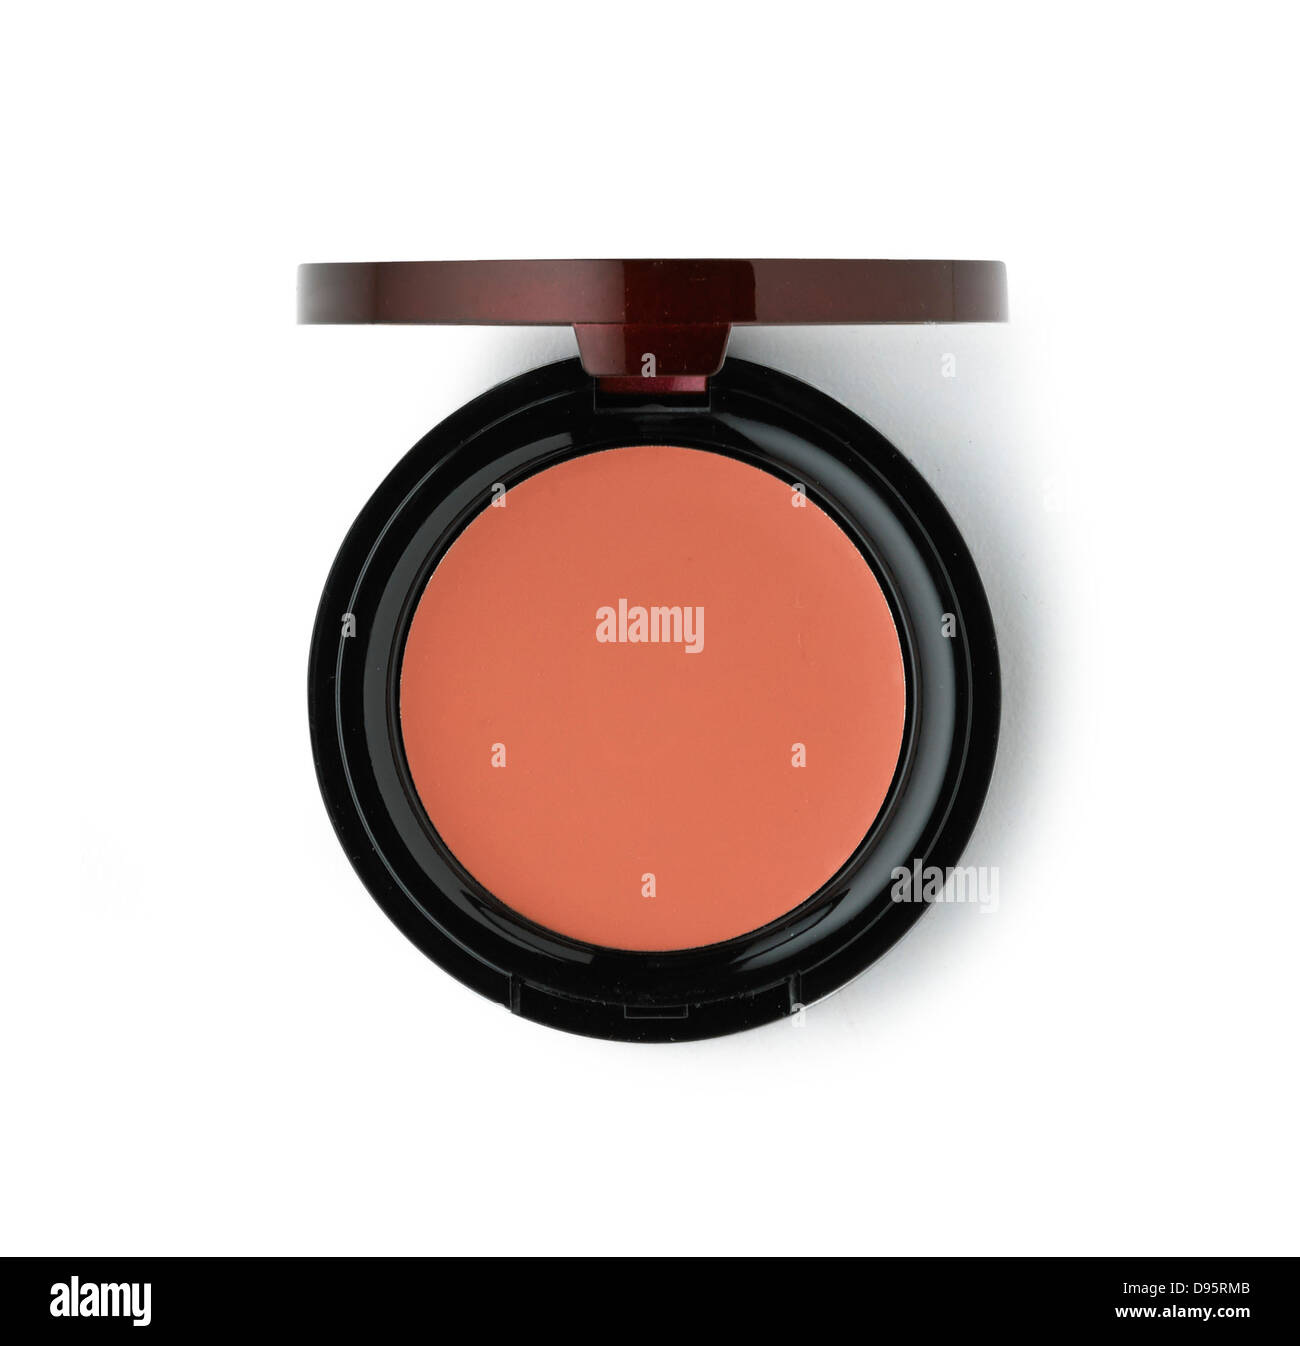 blusher compact cut out onto a white background - Stock Image